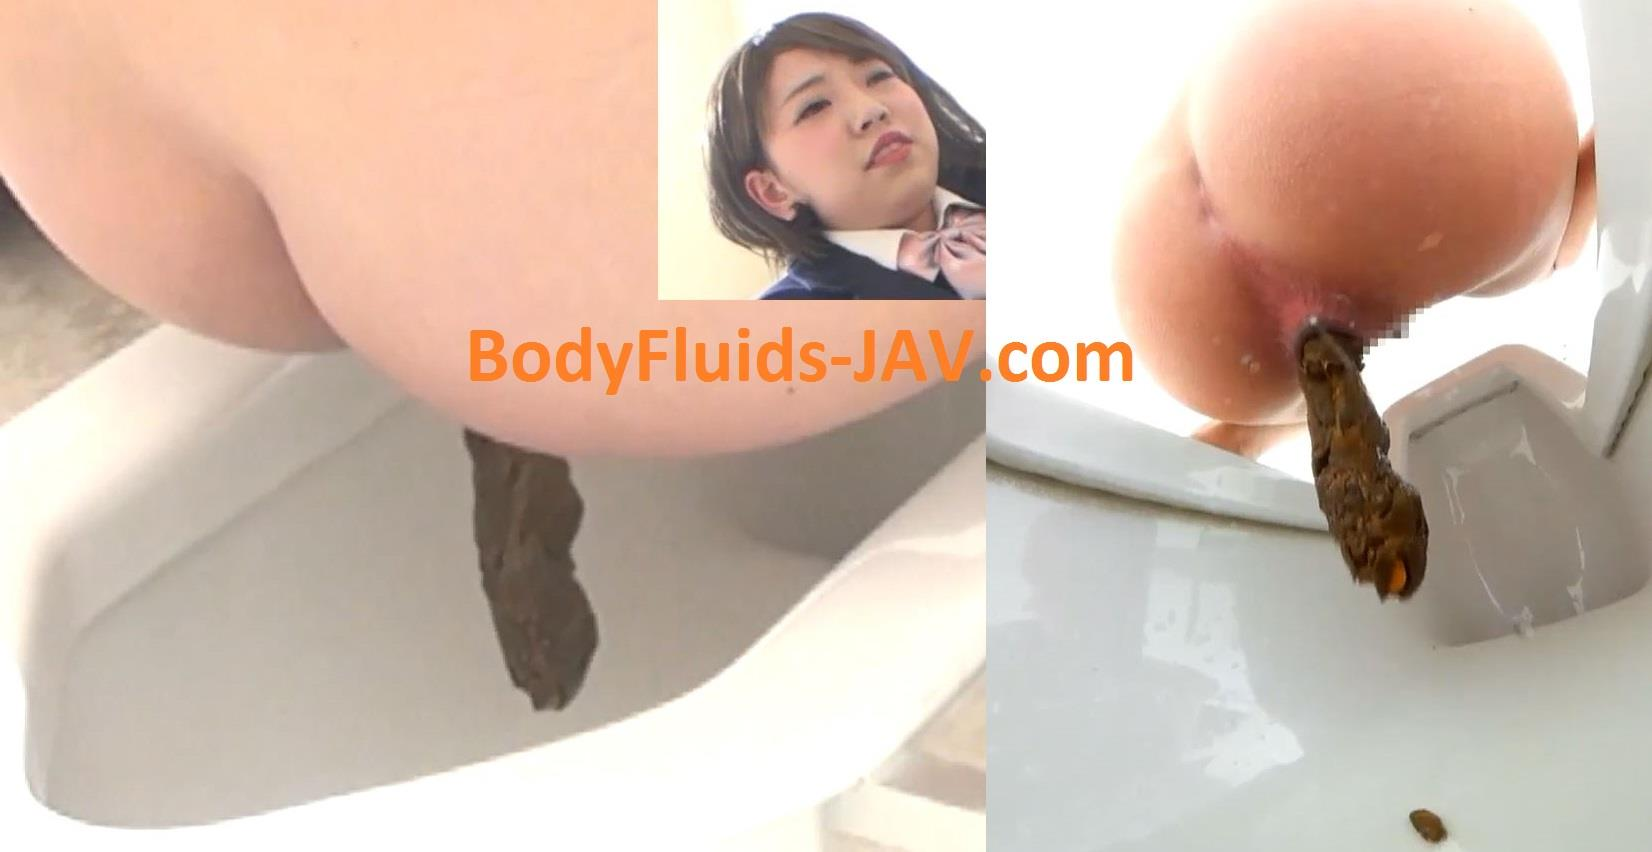 BFEE-40 Girl student does pooping and diarrhea in toilet. (HD 1080p)